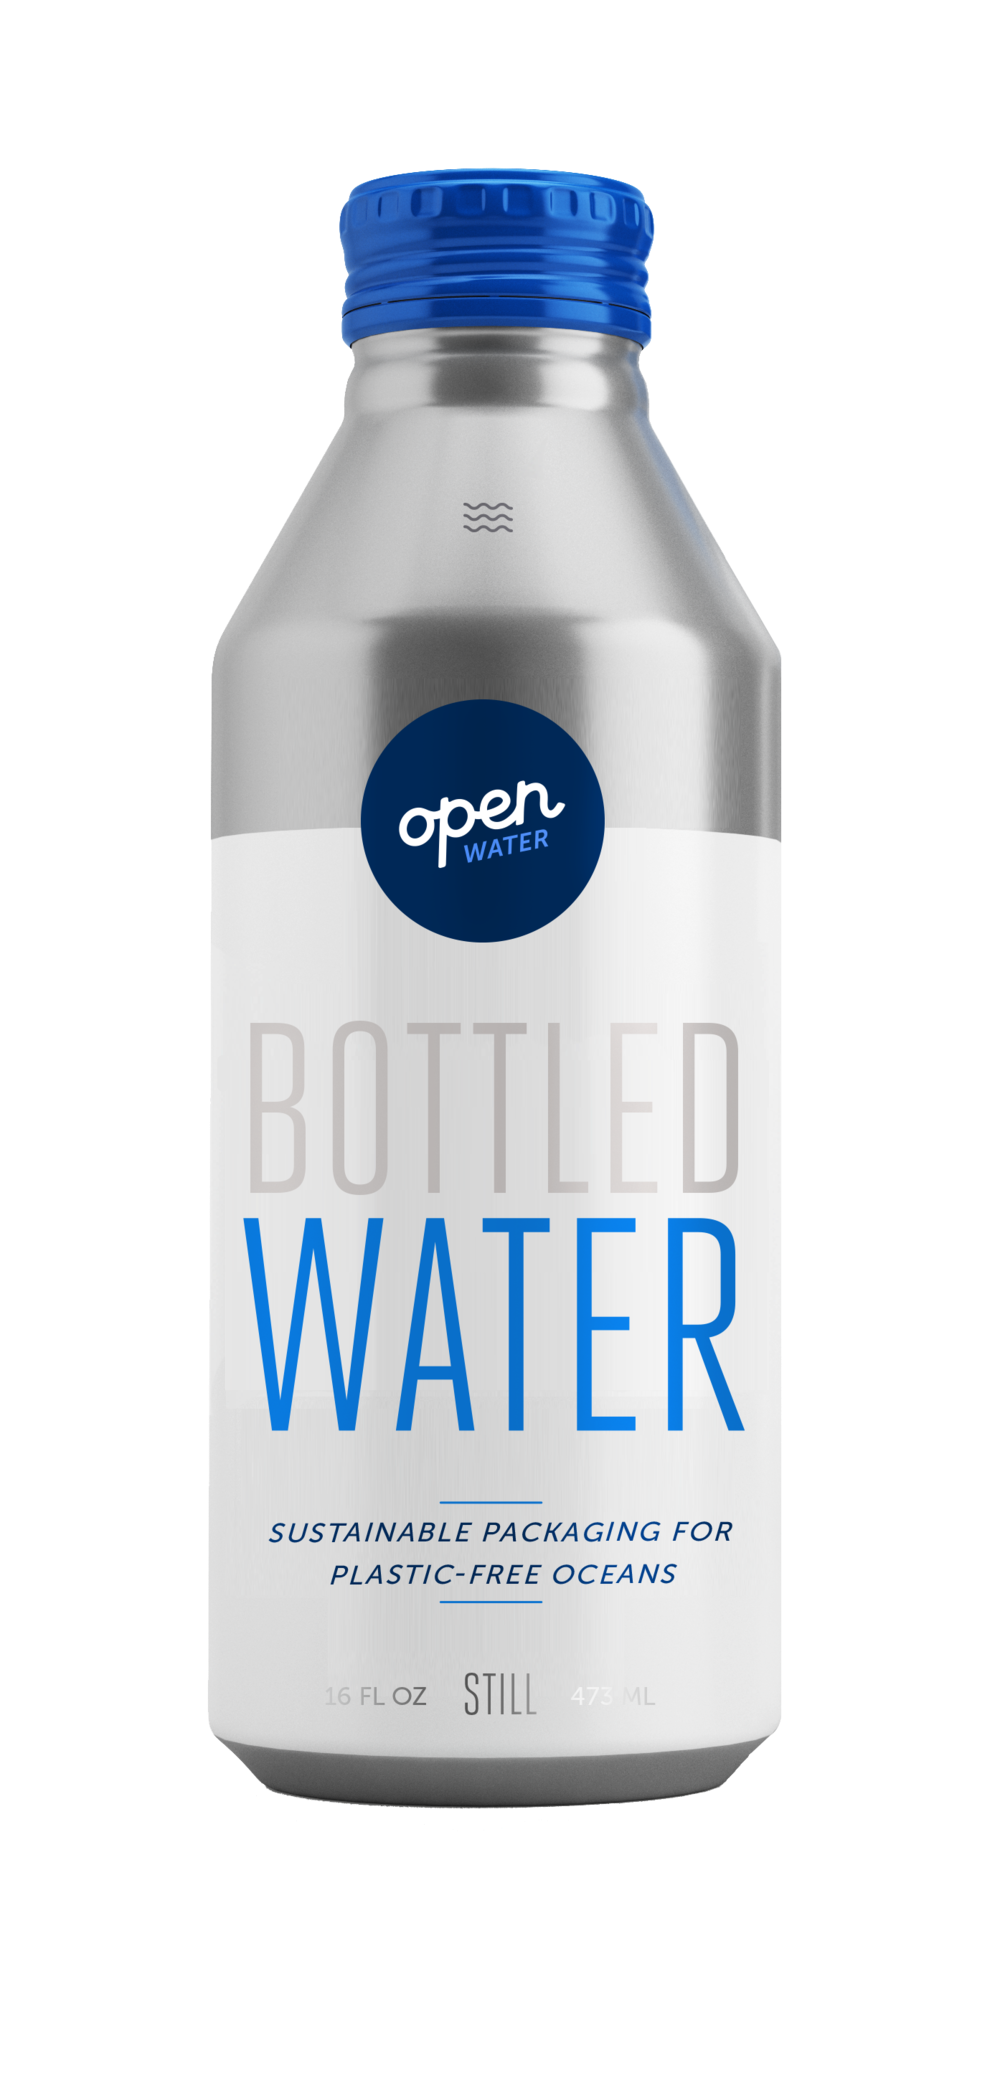 Open Water Still Bottled Water